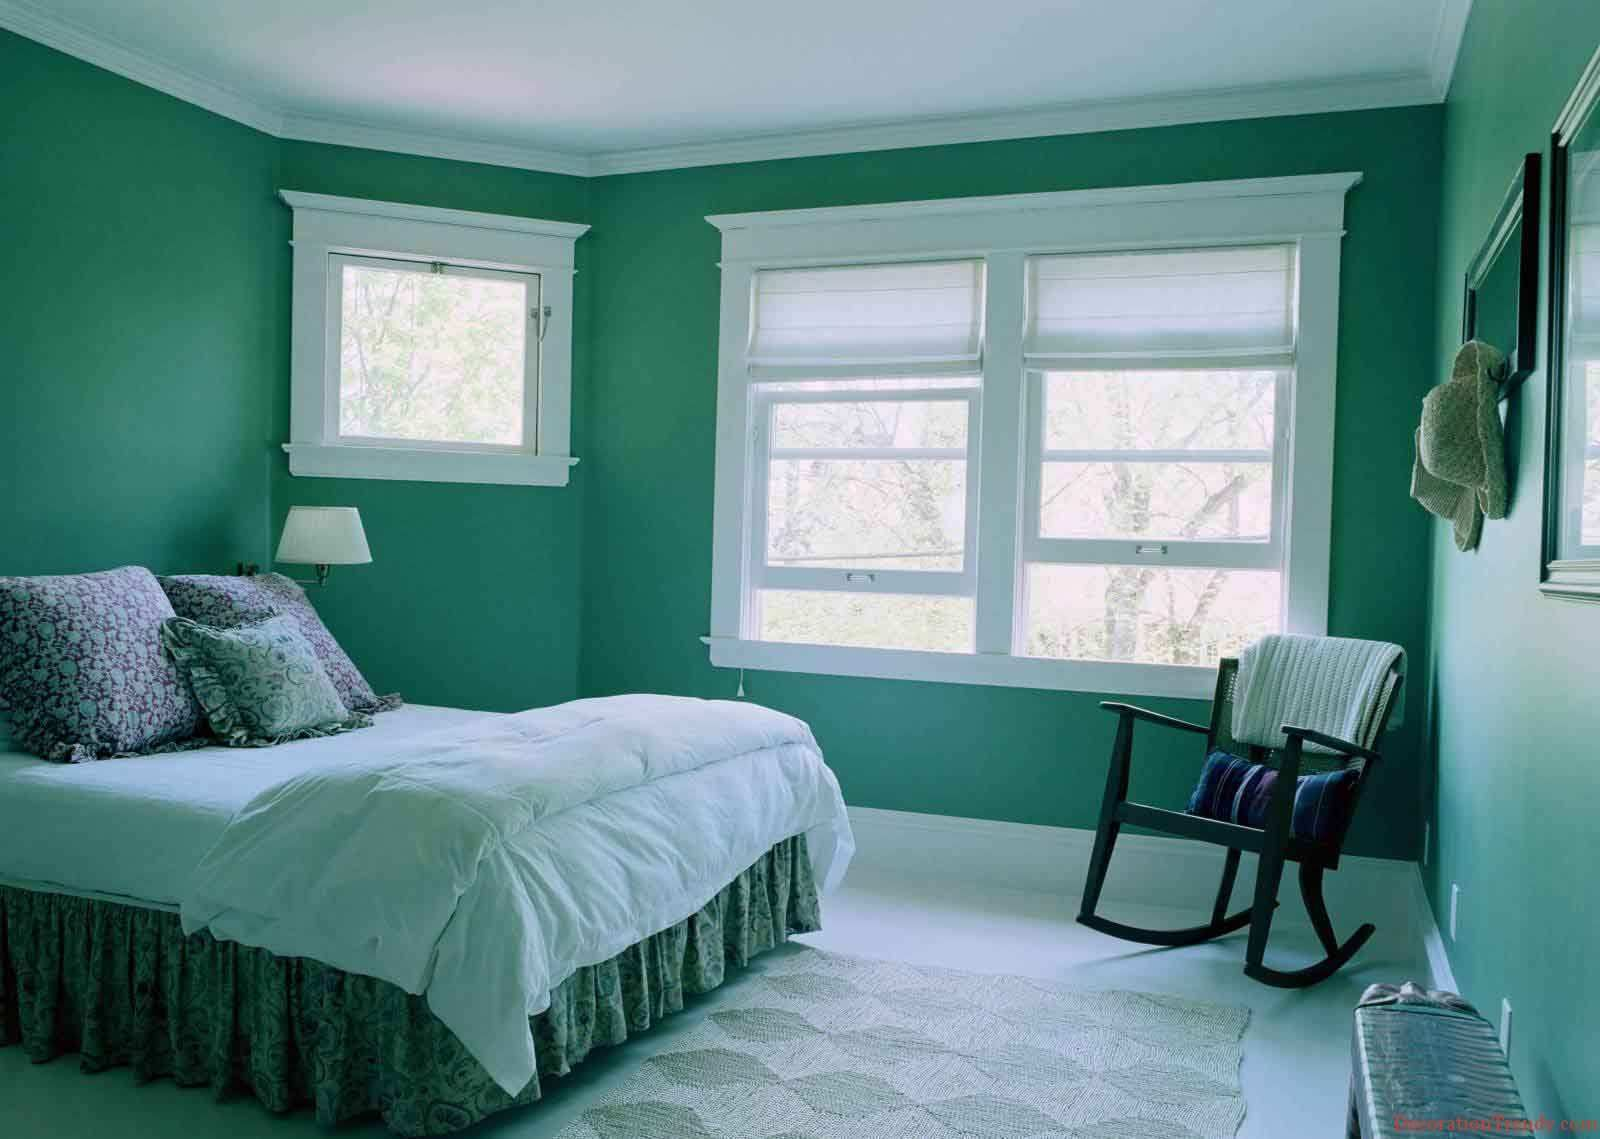 Master Bedroom Bedding Ideas Pinterest Masterbedroom Paint Color Inspiration Colors Wall